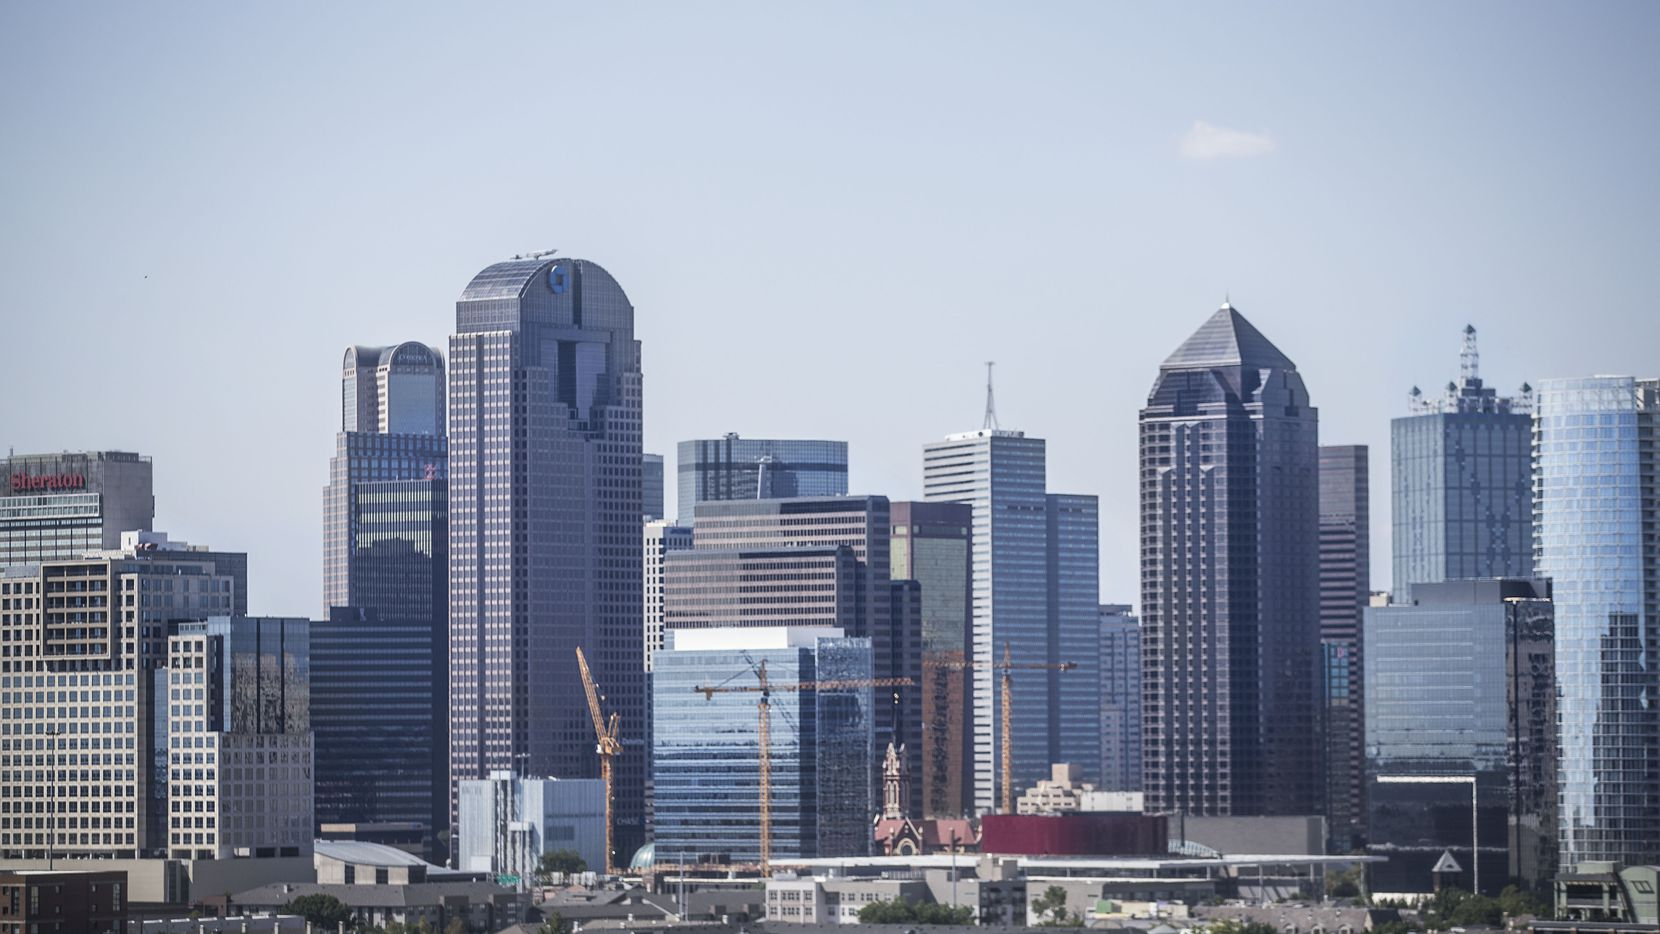 Amazon focused on the downtown Dallas area for its new headquarters location.